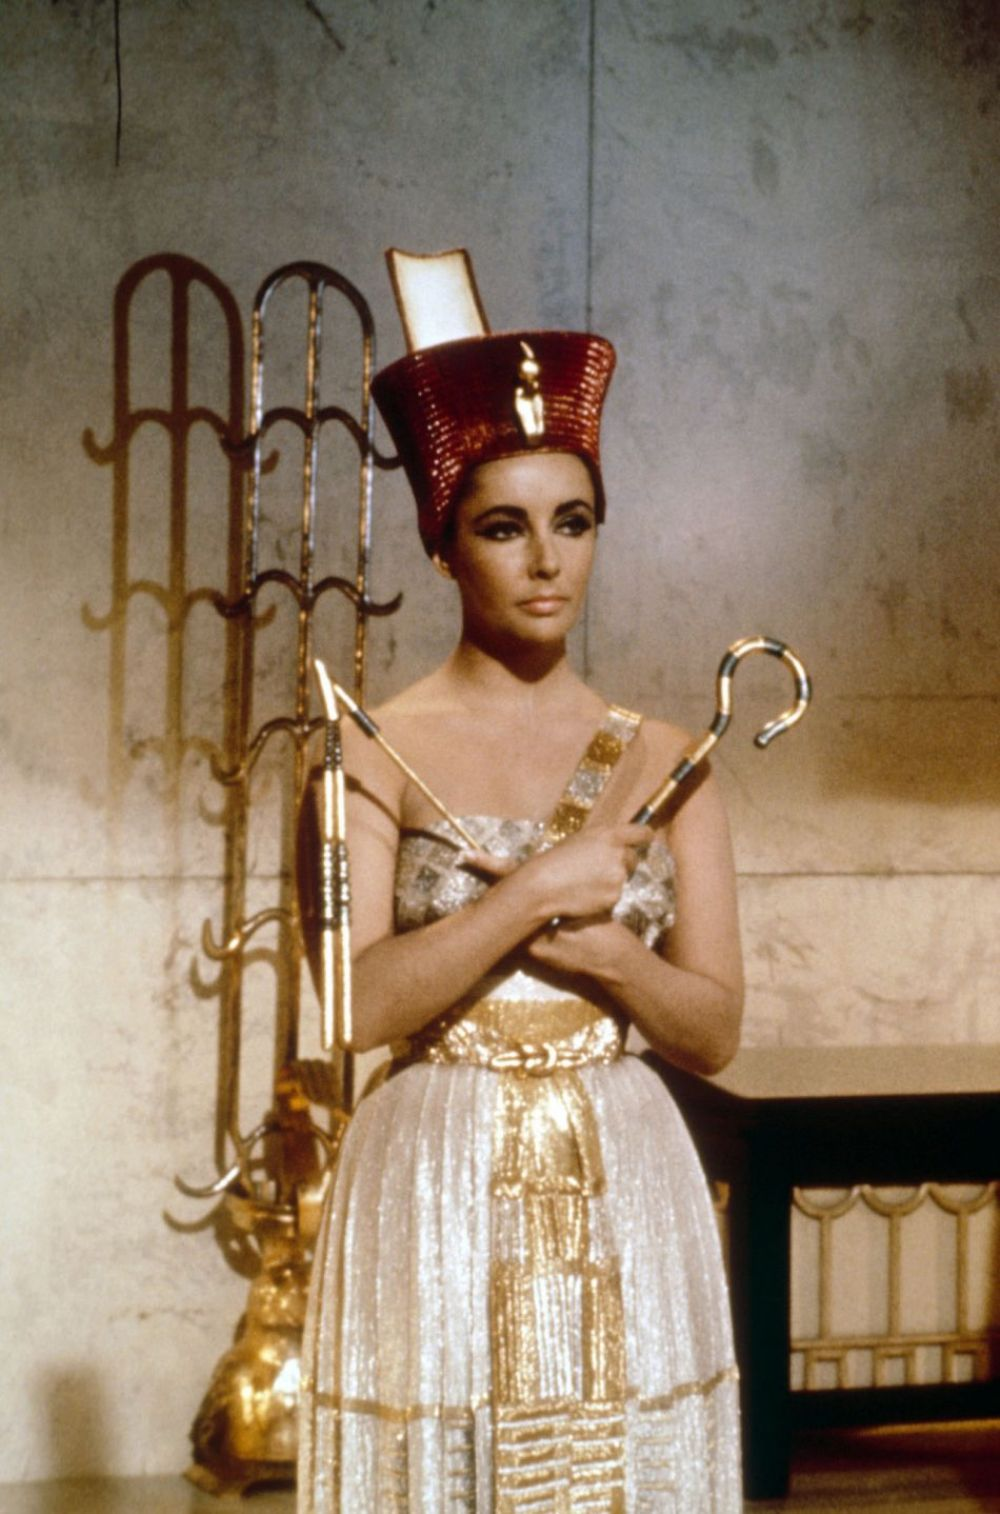 aa100 cleopatra portrayal 1963 film 'was cleopatra a diva', message to aa100  part 1 cleopatra compare and contrast the depictions of cleopatra in the 1934 and 1963  her portrayal was.